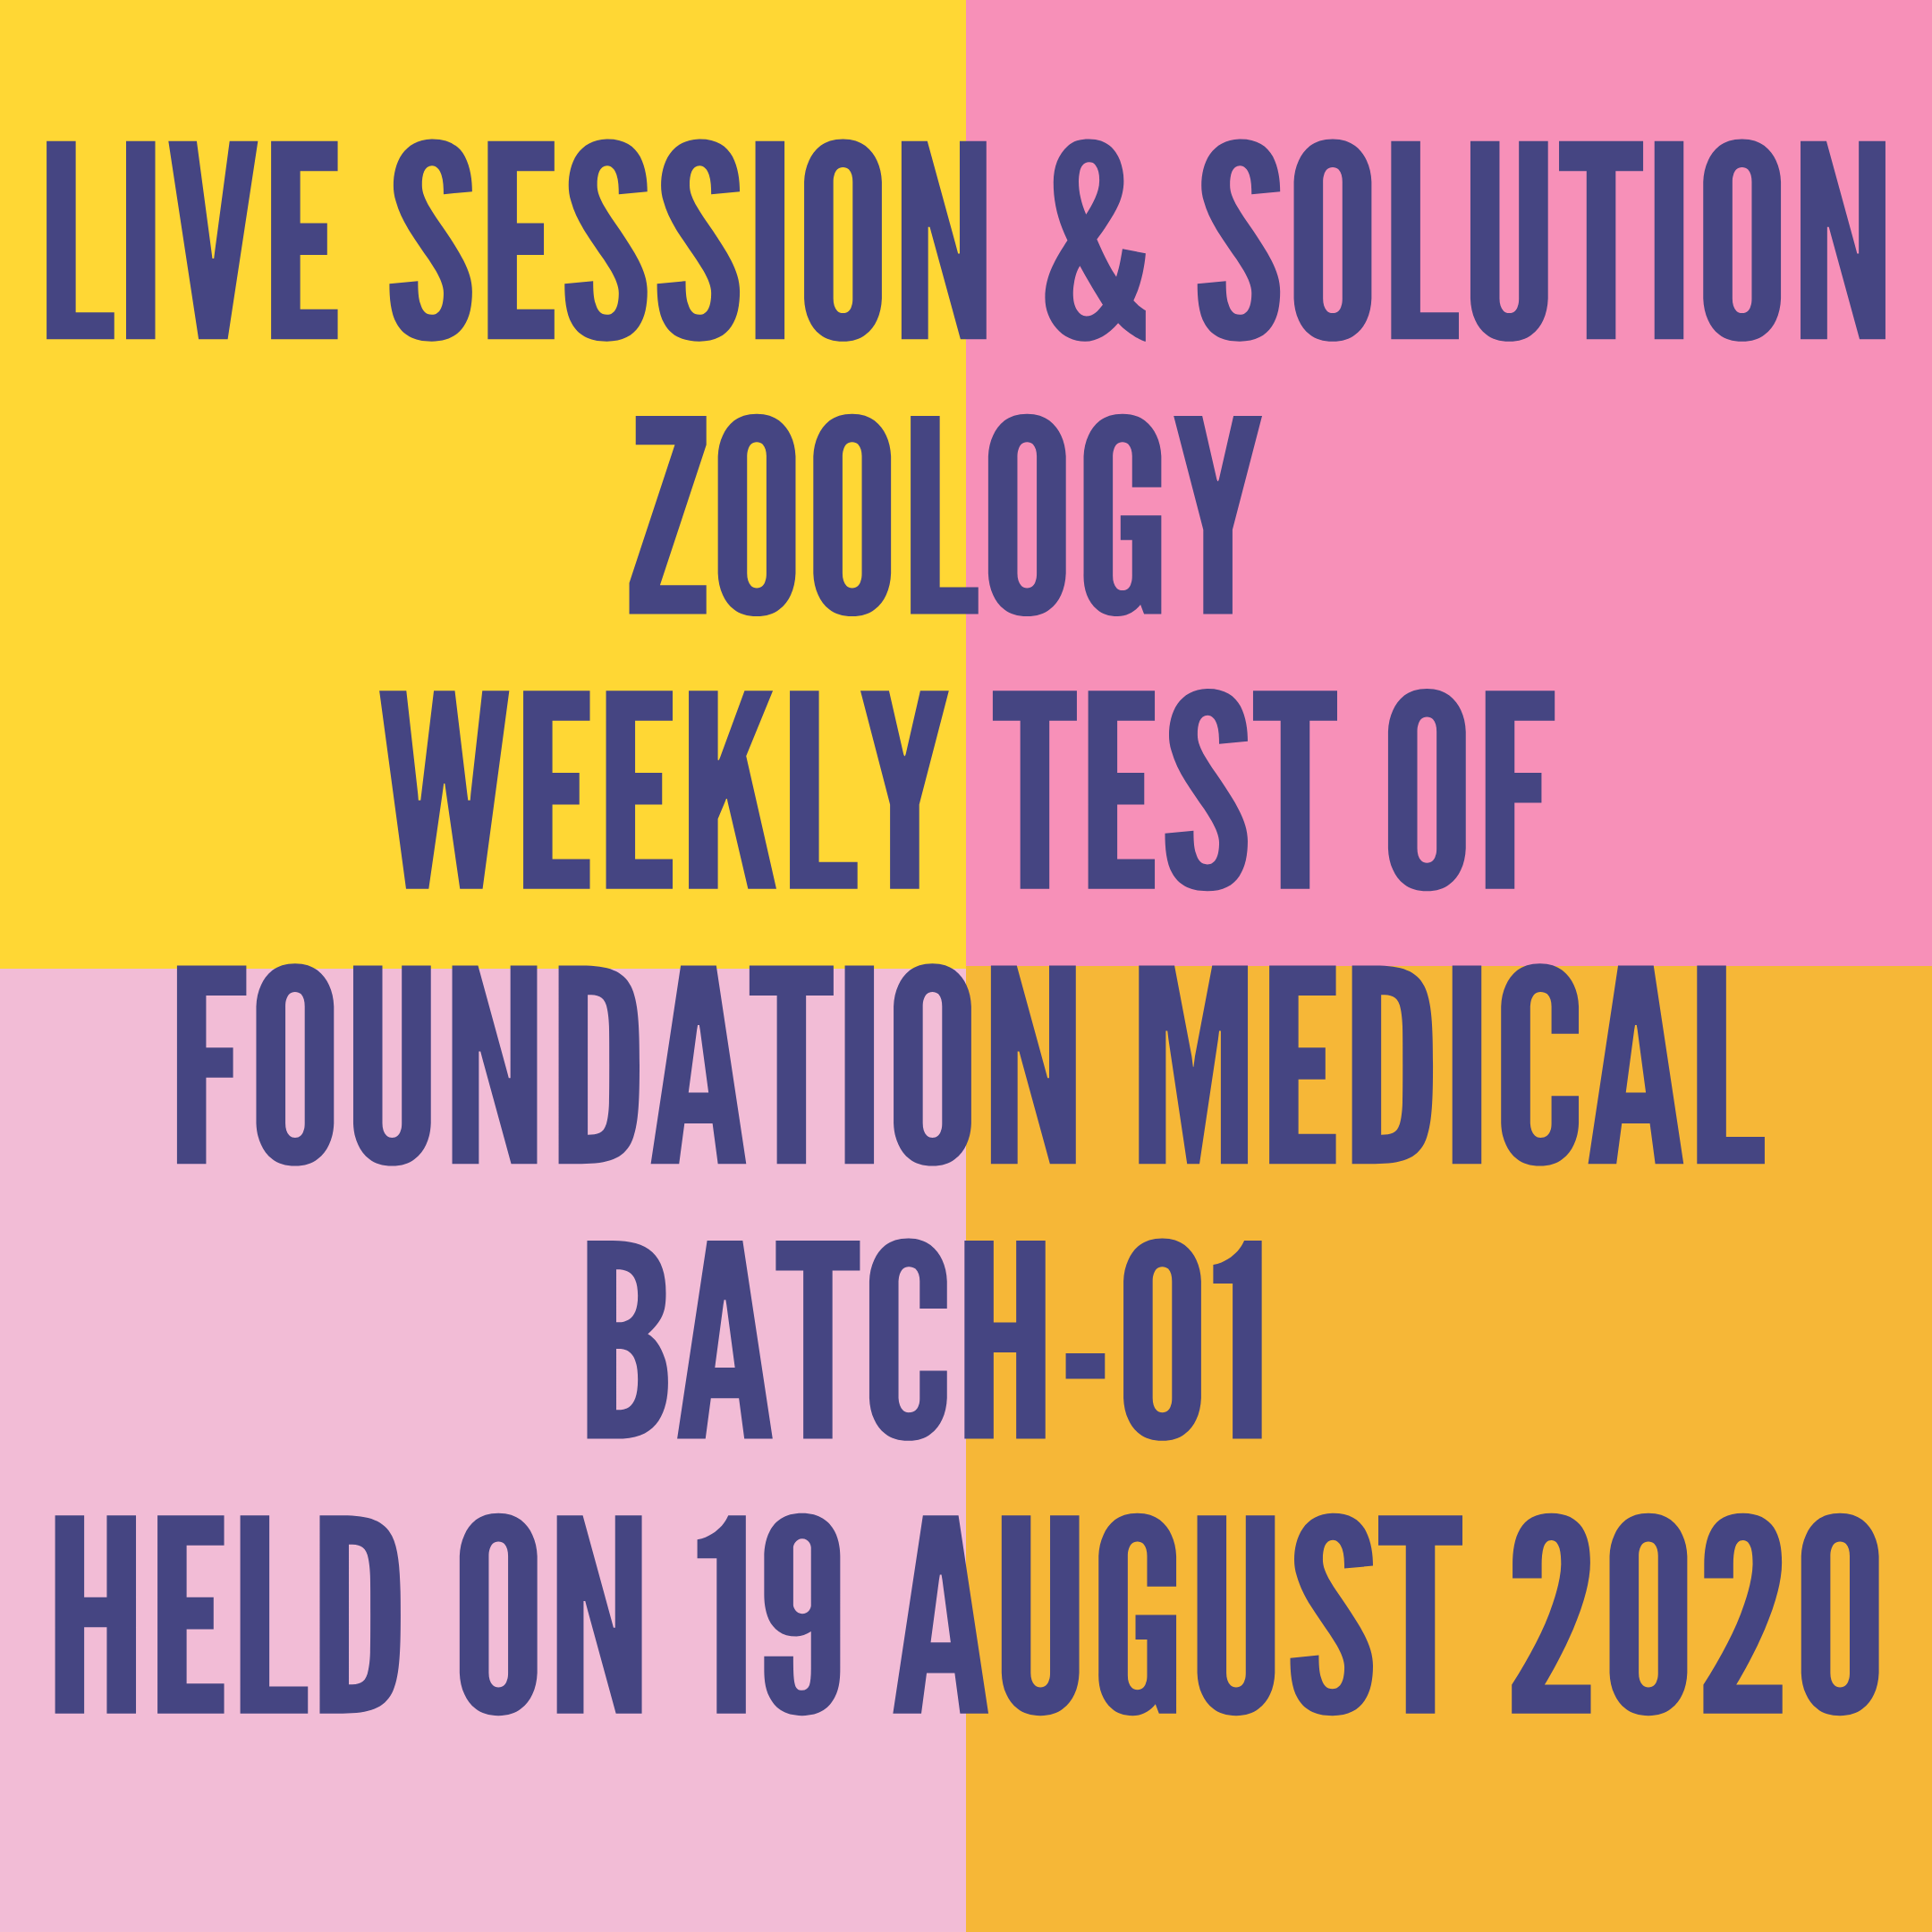 LIVE SESSION & SOLUTION ZOOLOGY WEEKLY TEST OF FOUNDATION MEDICAL BATCH-01  HELD ON 19 AUGUST 2020